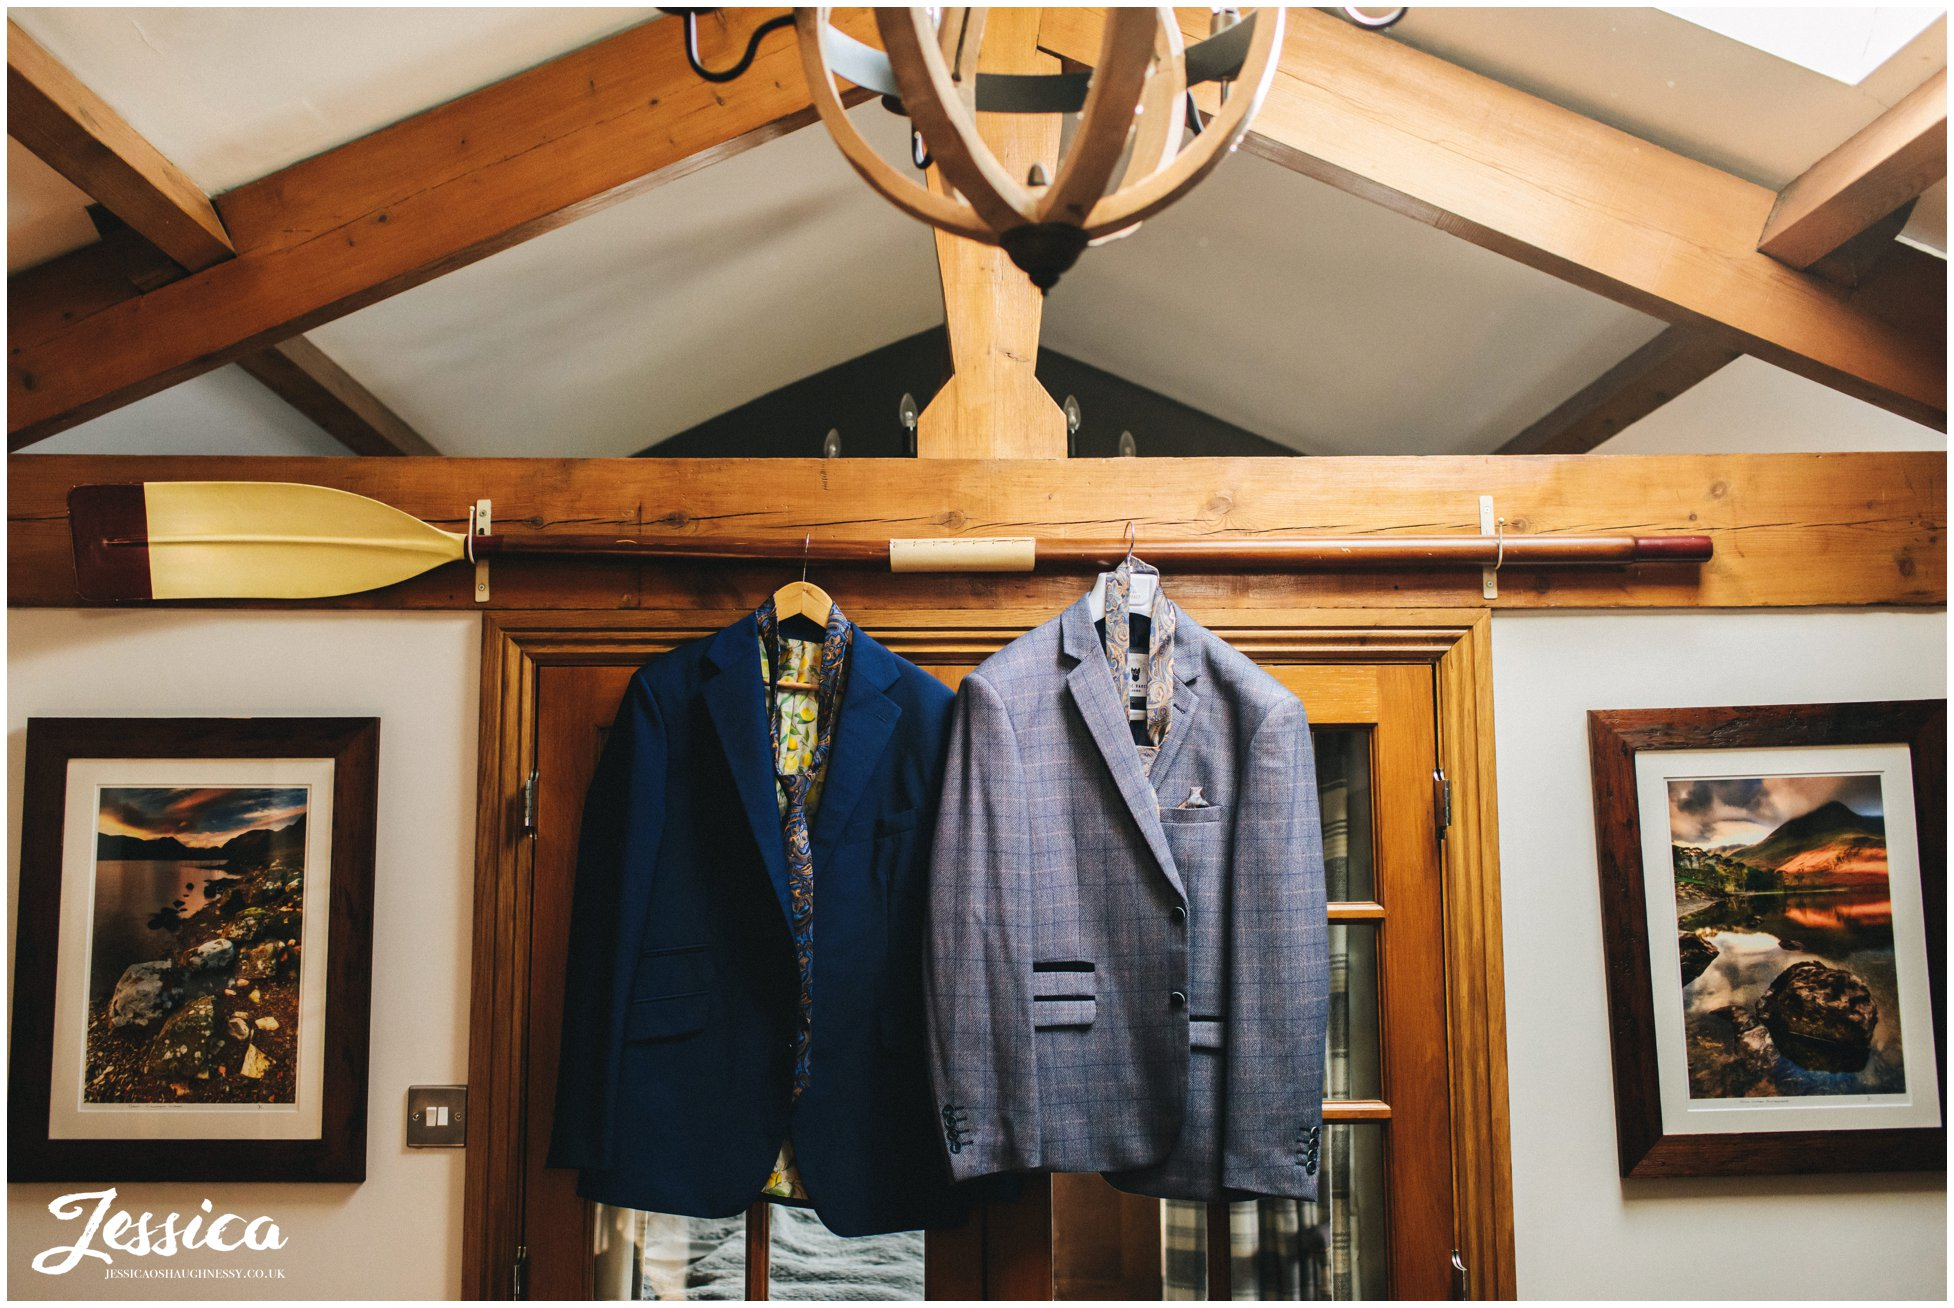 The groom's suits hang ready for their wedding